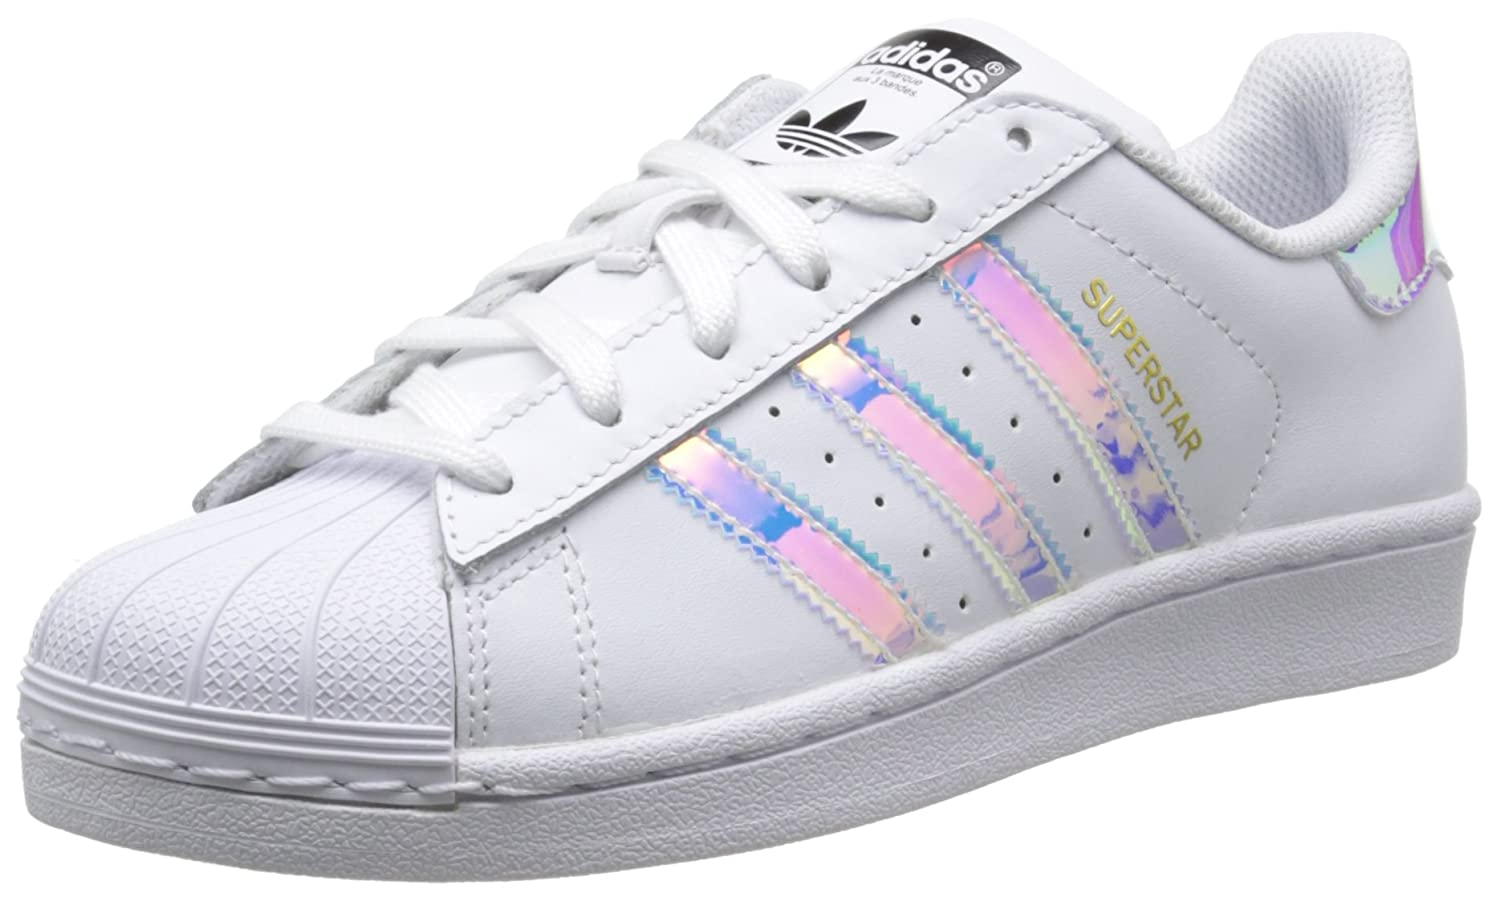 a51e3f7f3a8 Amazon.com  adidas Originals Superstar Shoes 6.5 B(M) US Women   5.5 D(M)  US White Metallic Silver  Shoes